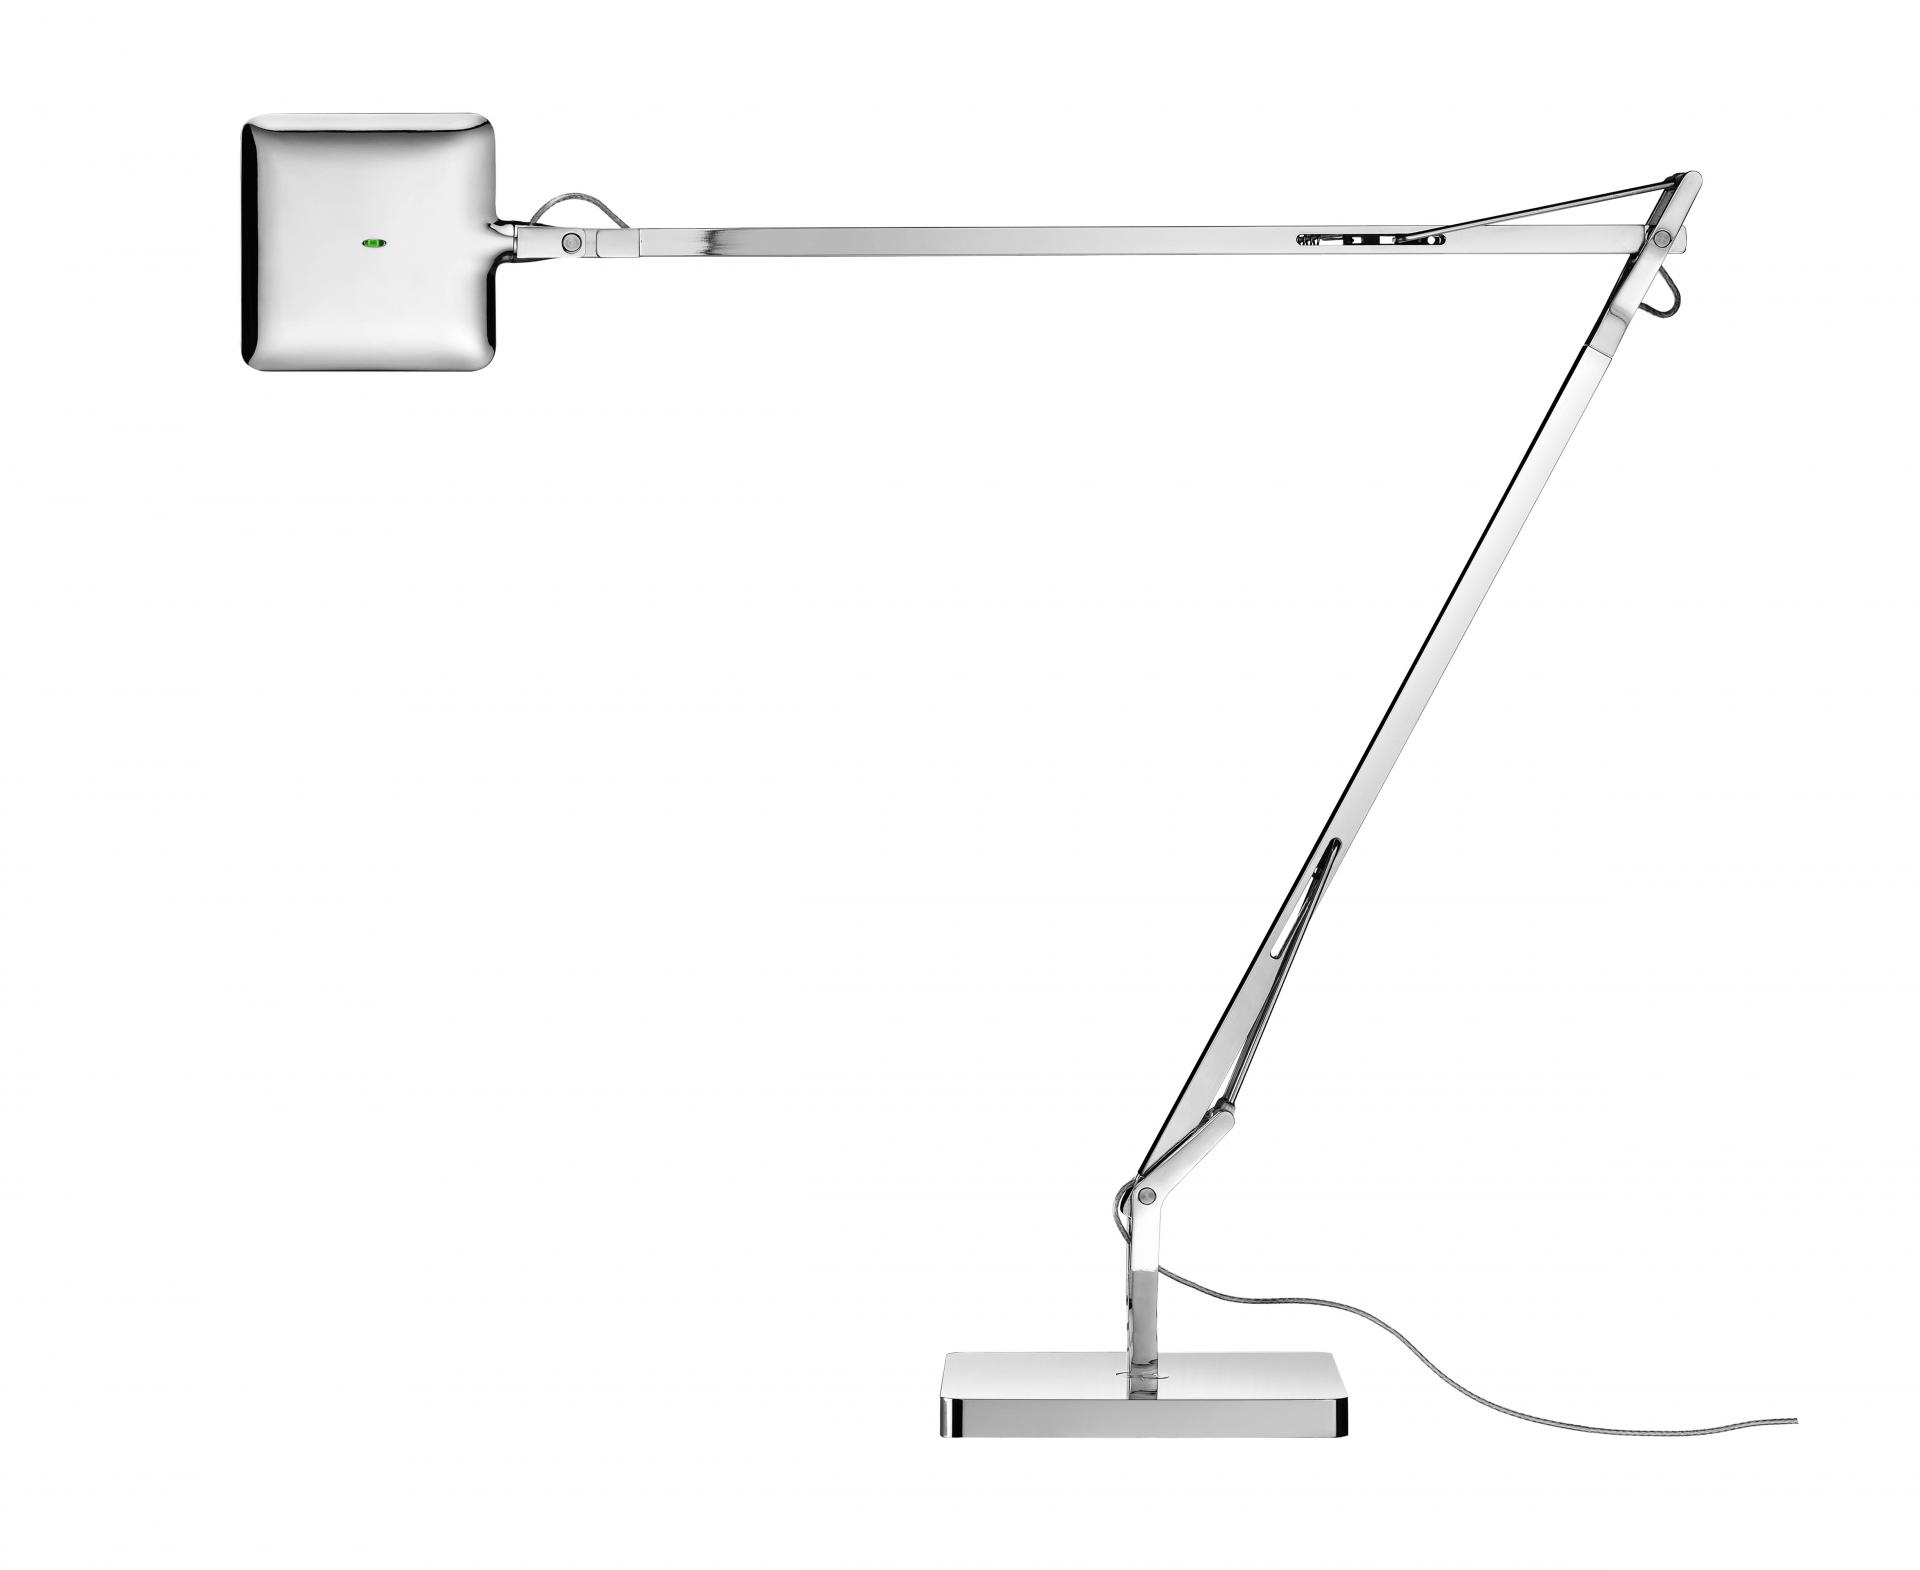 flos kelvin led lamp balanced arm lamp with f3315033. Black Bedroom Furniture Sets. Home Design Ideas